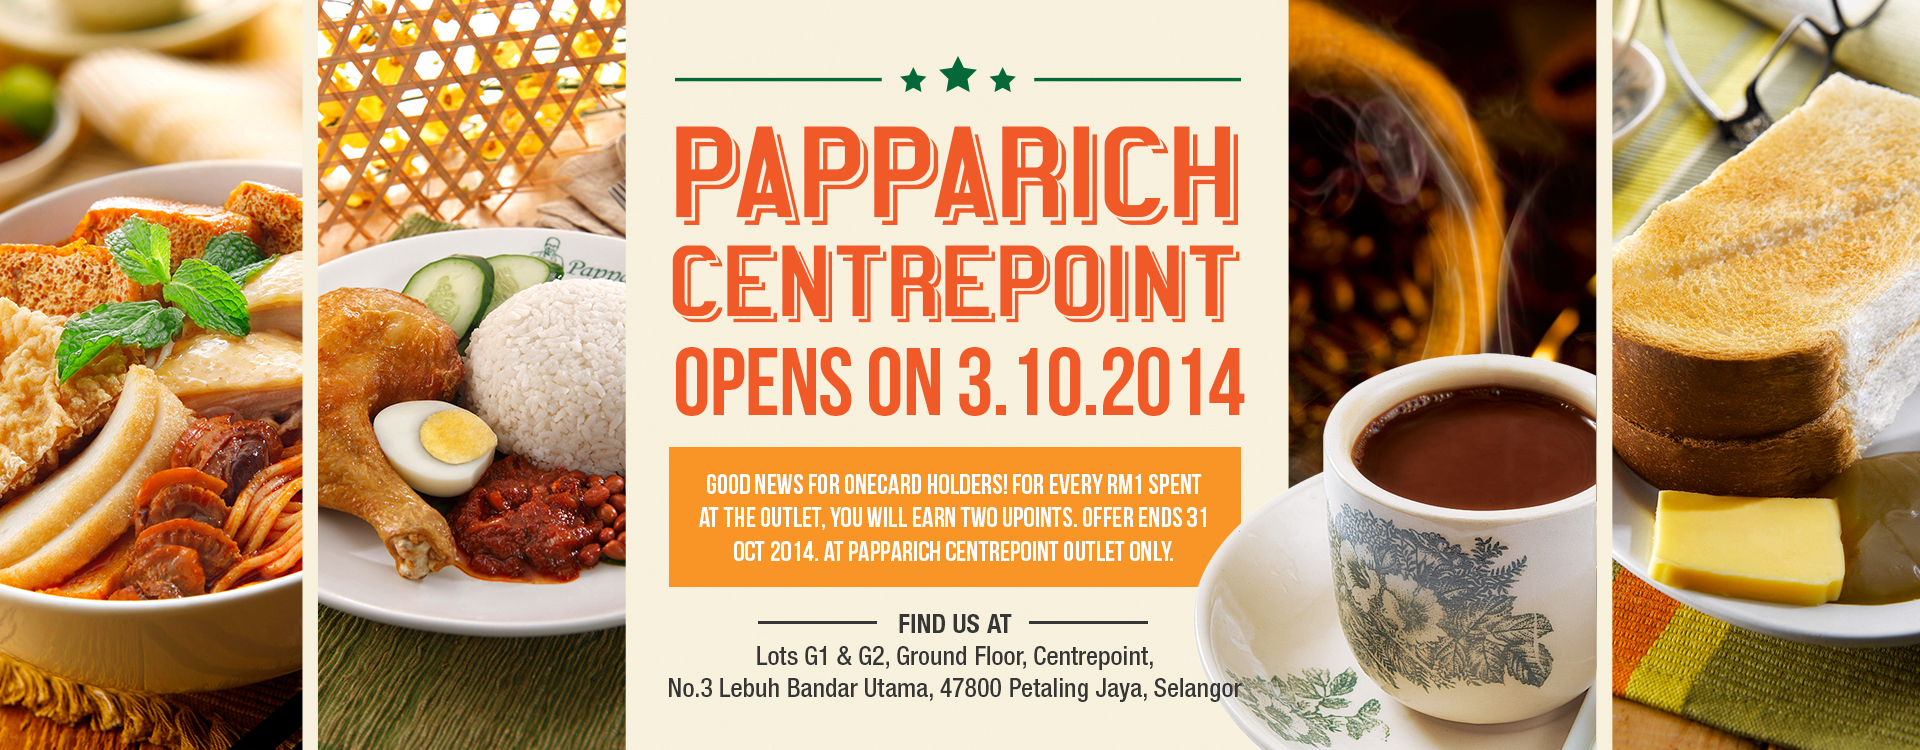 PPR-web-banner_Centrepoint